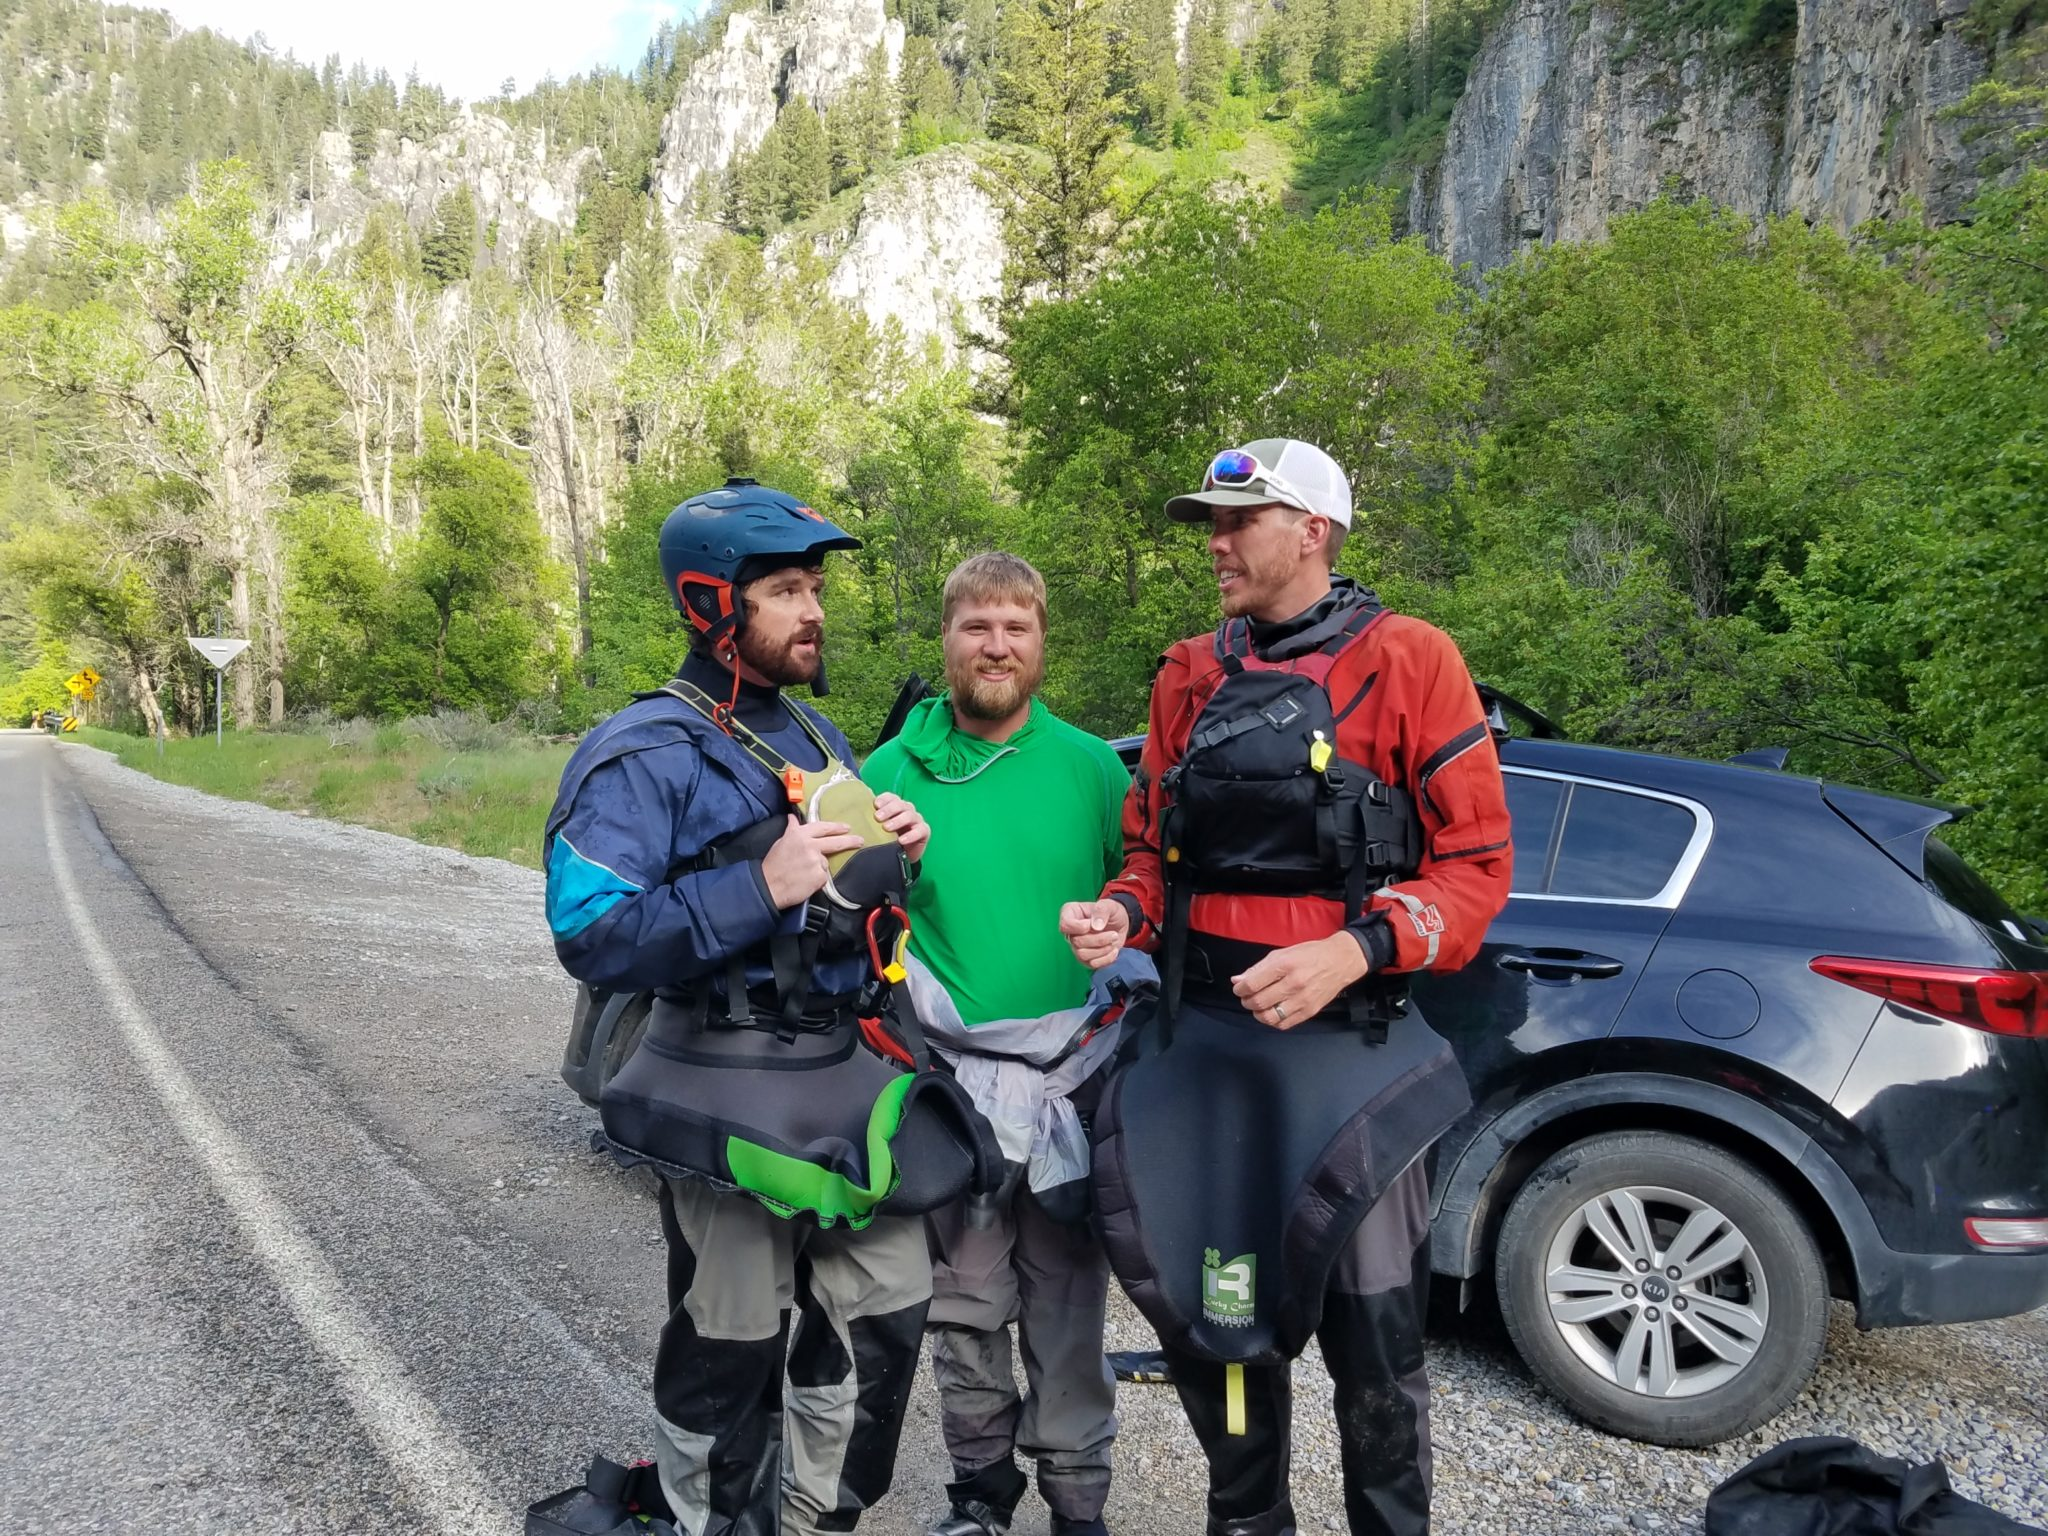 Good news Thursday: Kayakers rescue family, racehorse named for Dr. Fauci